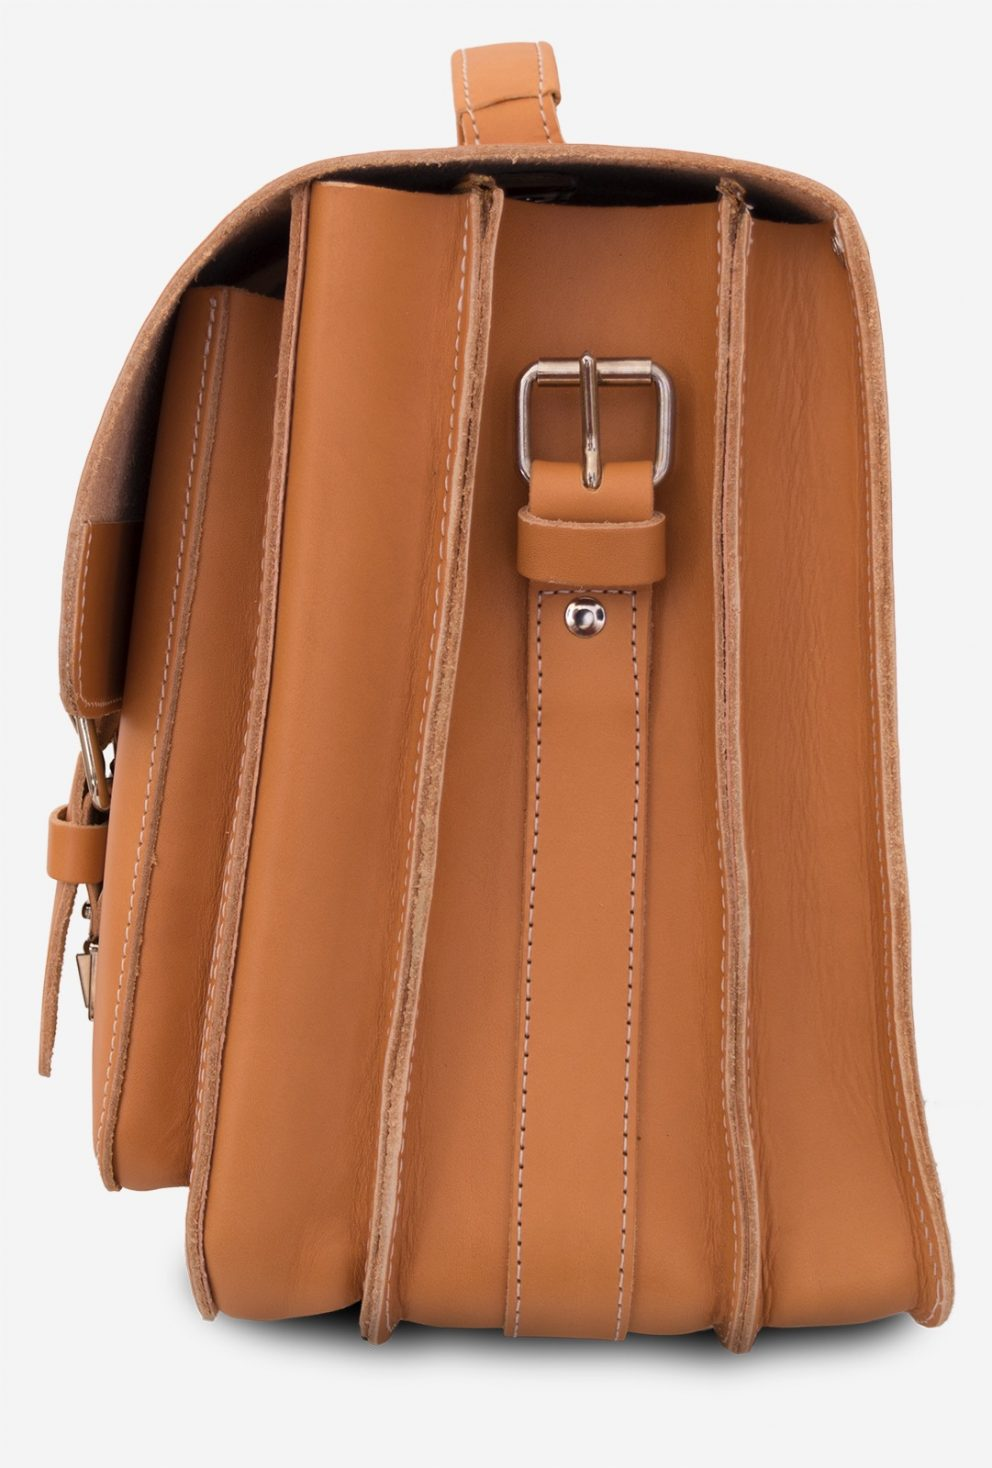 Side view of the large Professor tan leather satchel with 3 gussets and 2 front pockets.